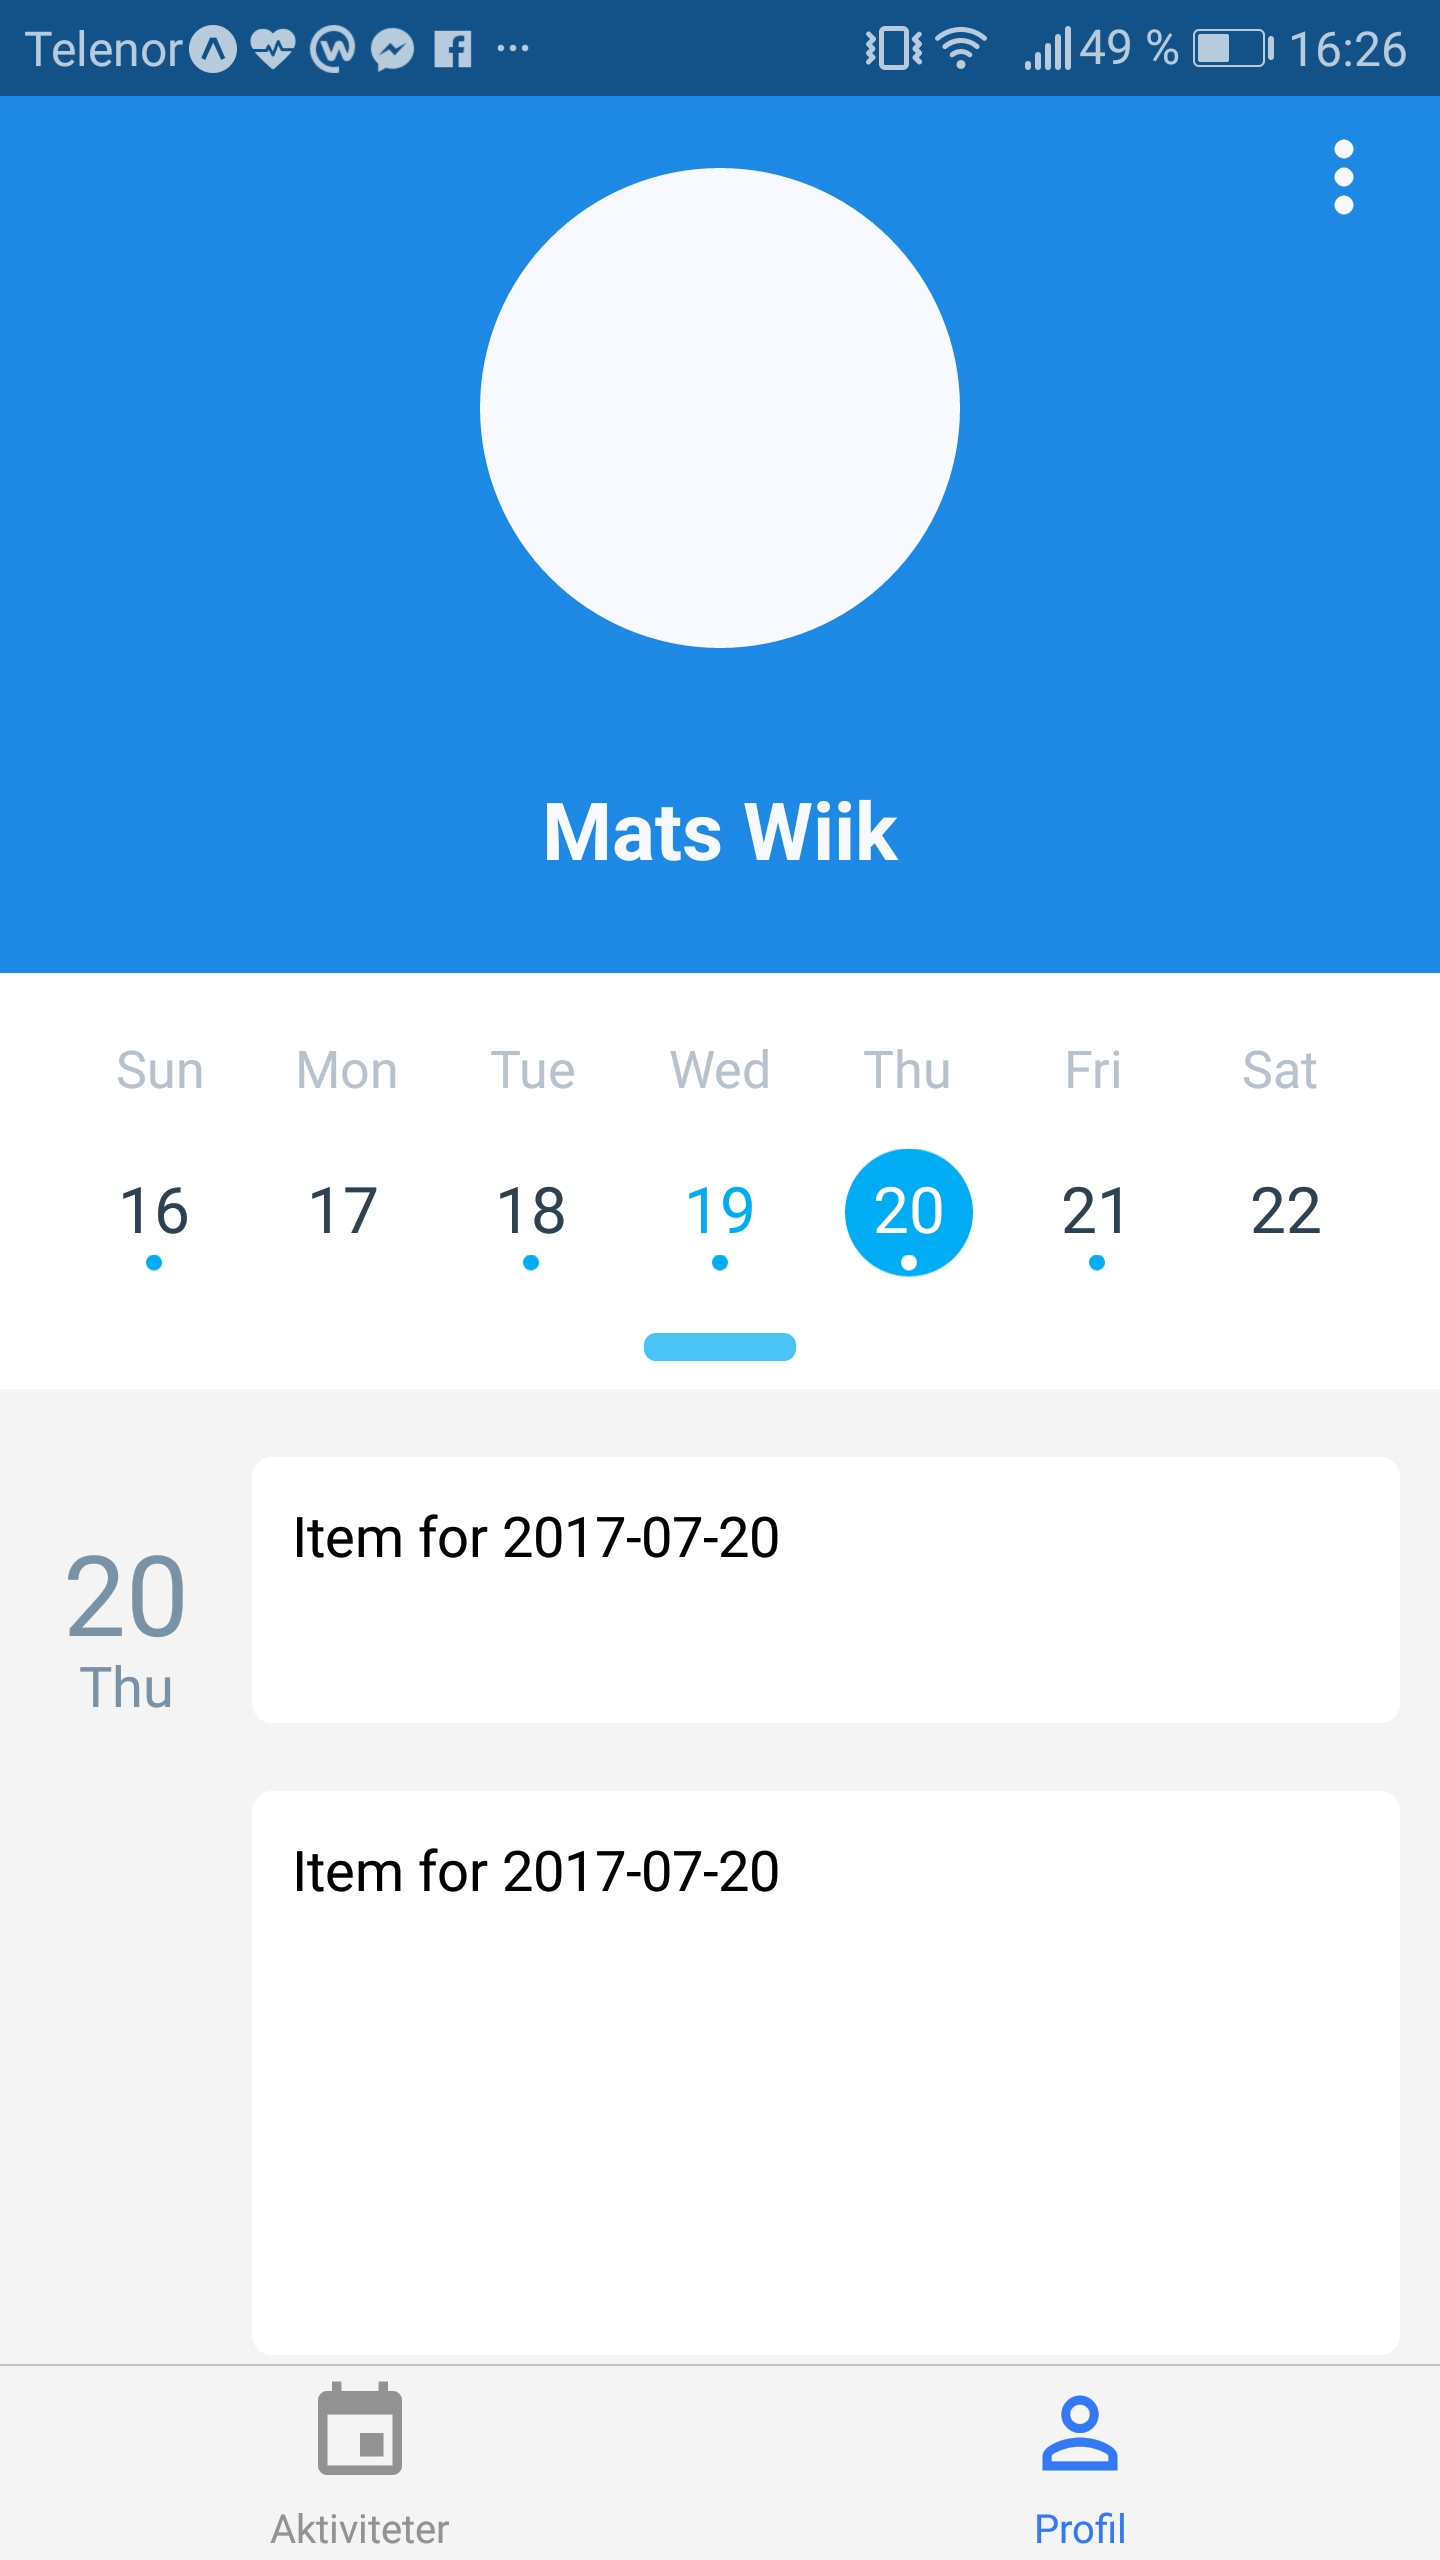 Different Calendar Sizes On Agenda · Issue #105 · Wix/react